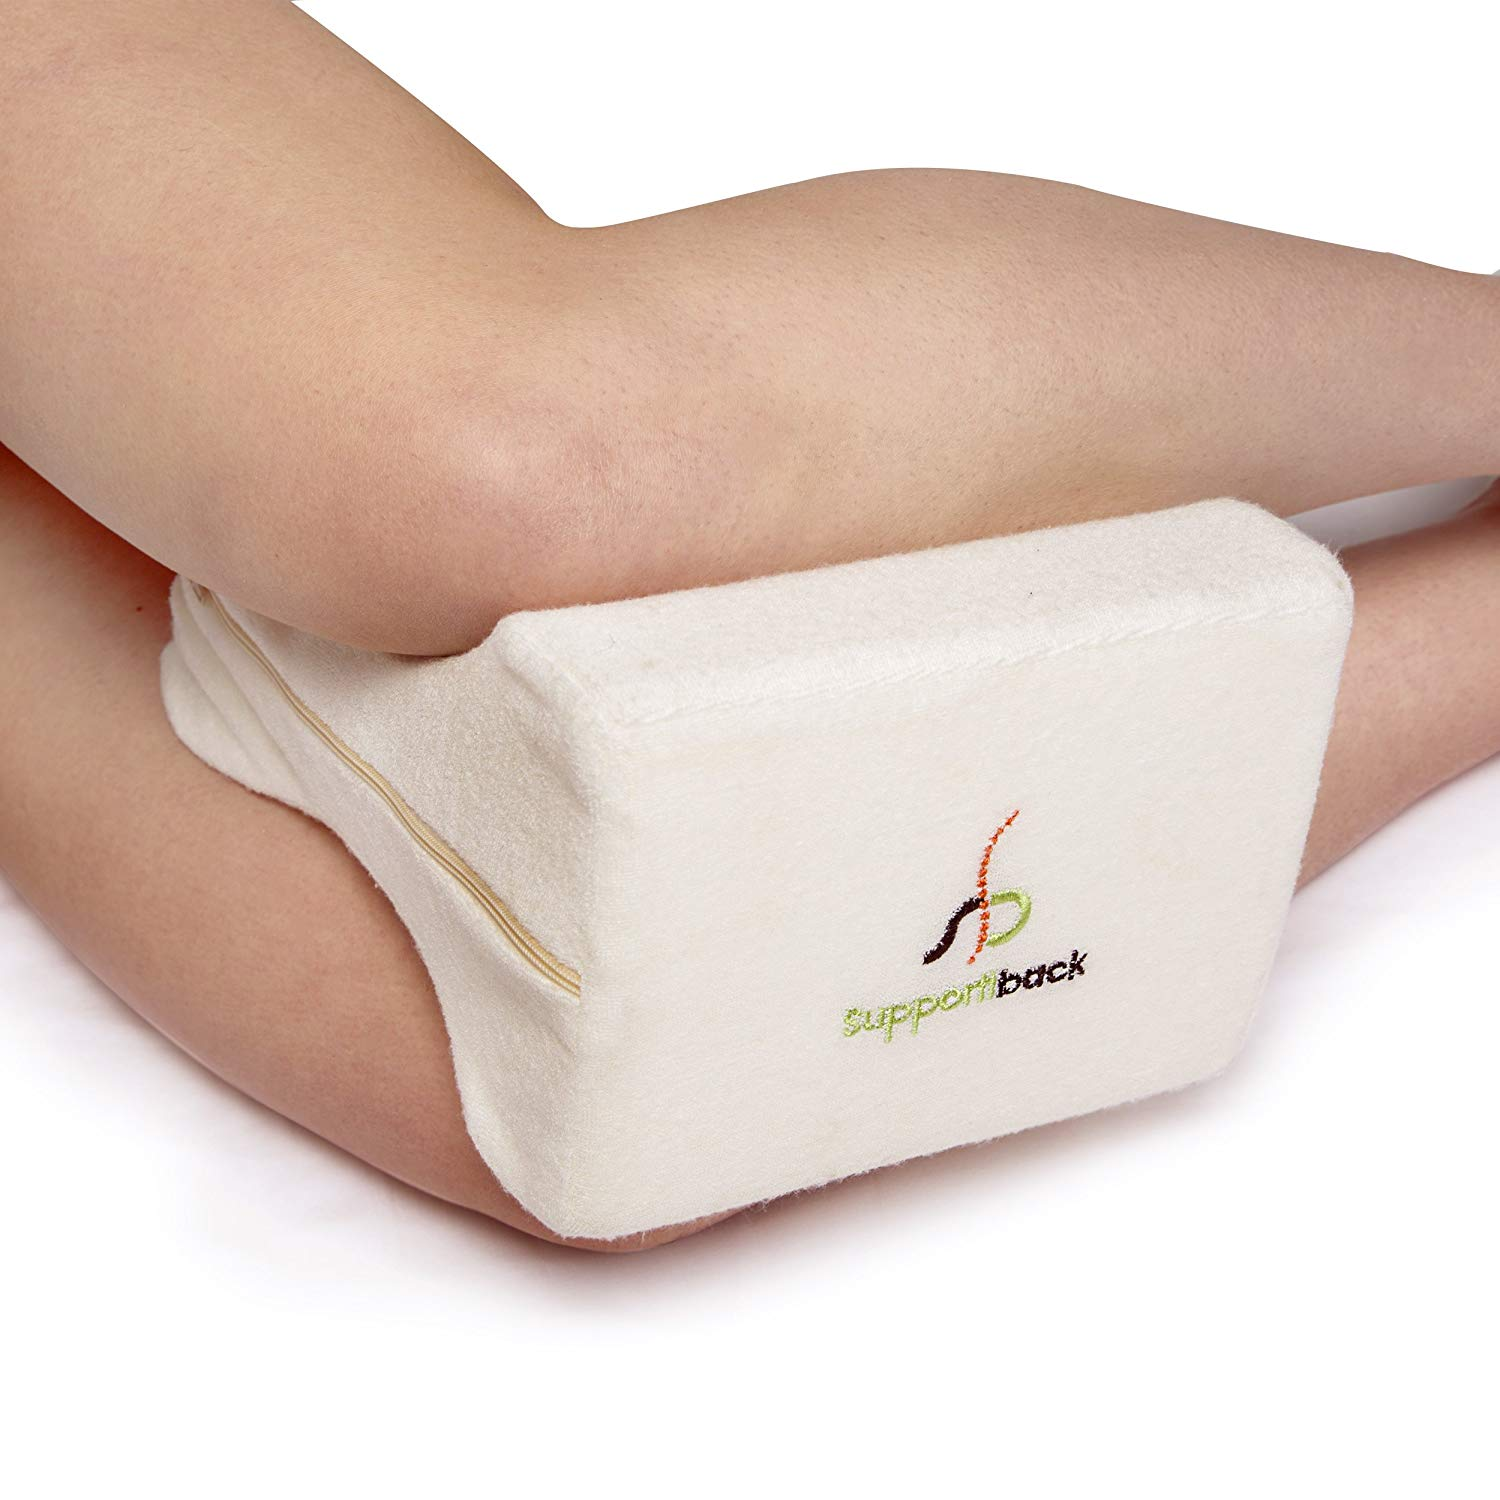 Orthopedic Knee Cushion – High-Density Memory Foam